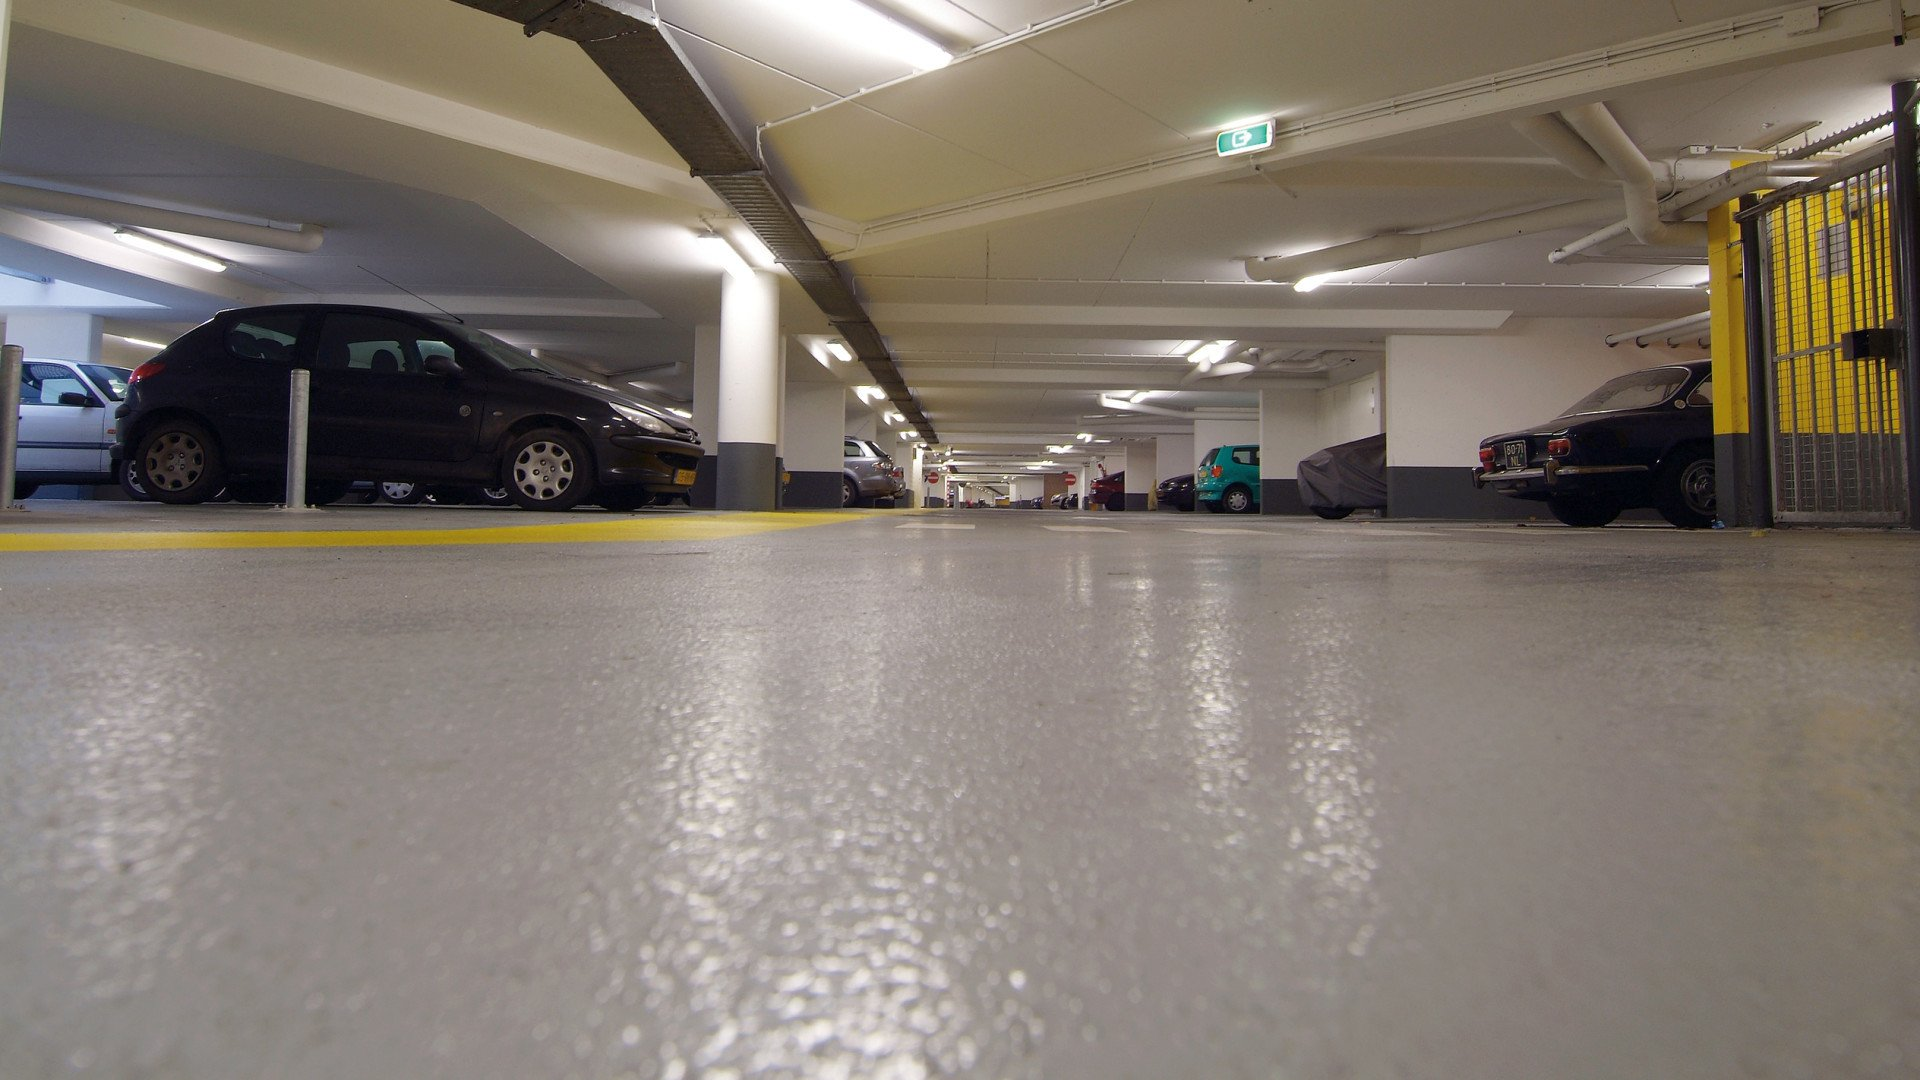 Parkeergarage Oude Haven Rotterdam Bolicoat 50 RF